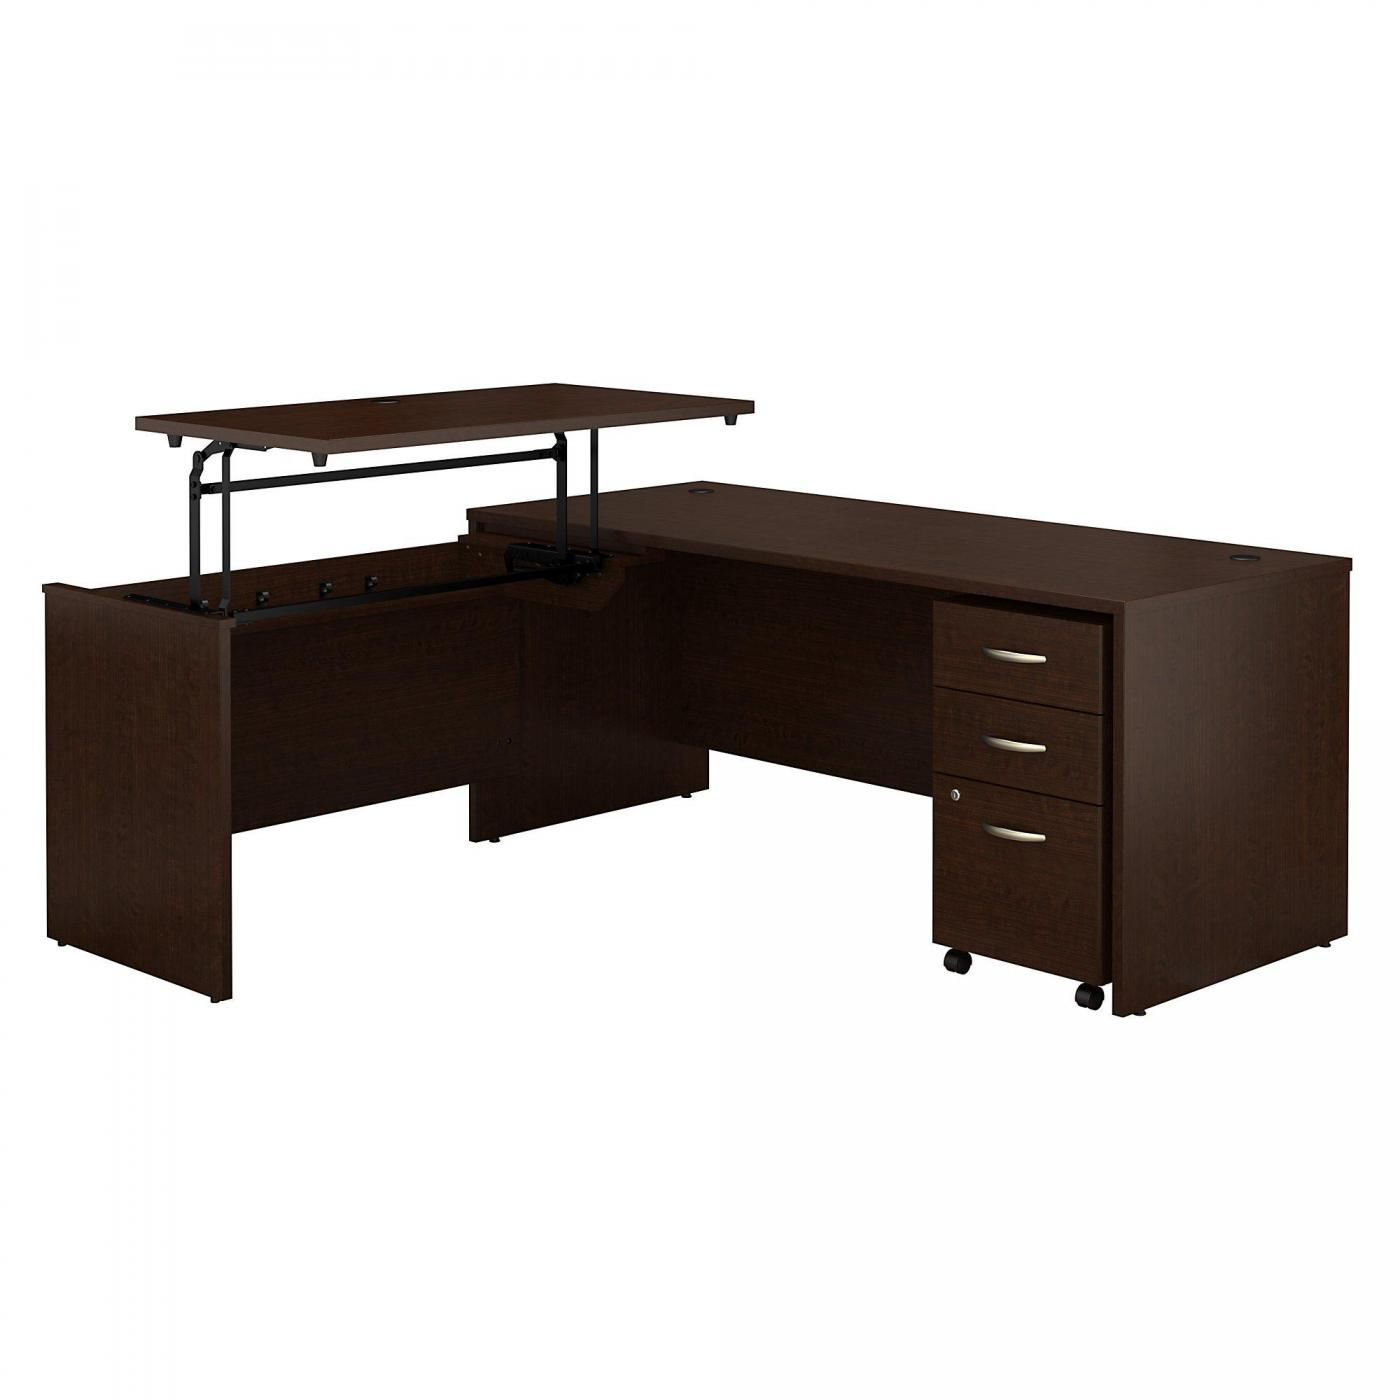 <font color=#c60><b>BUSH BUSINESS FURNITURE SERIES C 72W X 30D 3 POSITION SIT TO STAND L SHAPED DESK WITH MOBILE FILE CABINET. FREE SHIPPING</font></b>